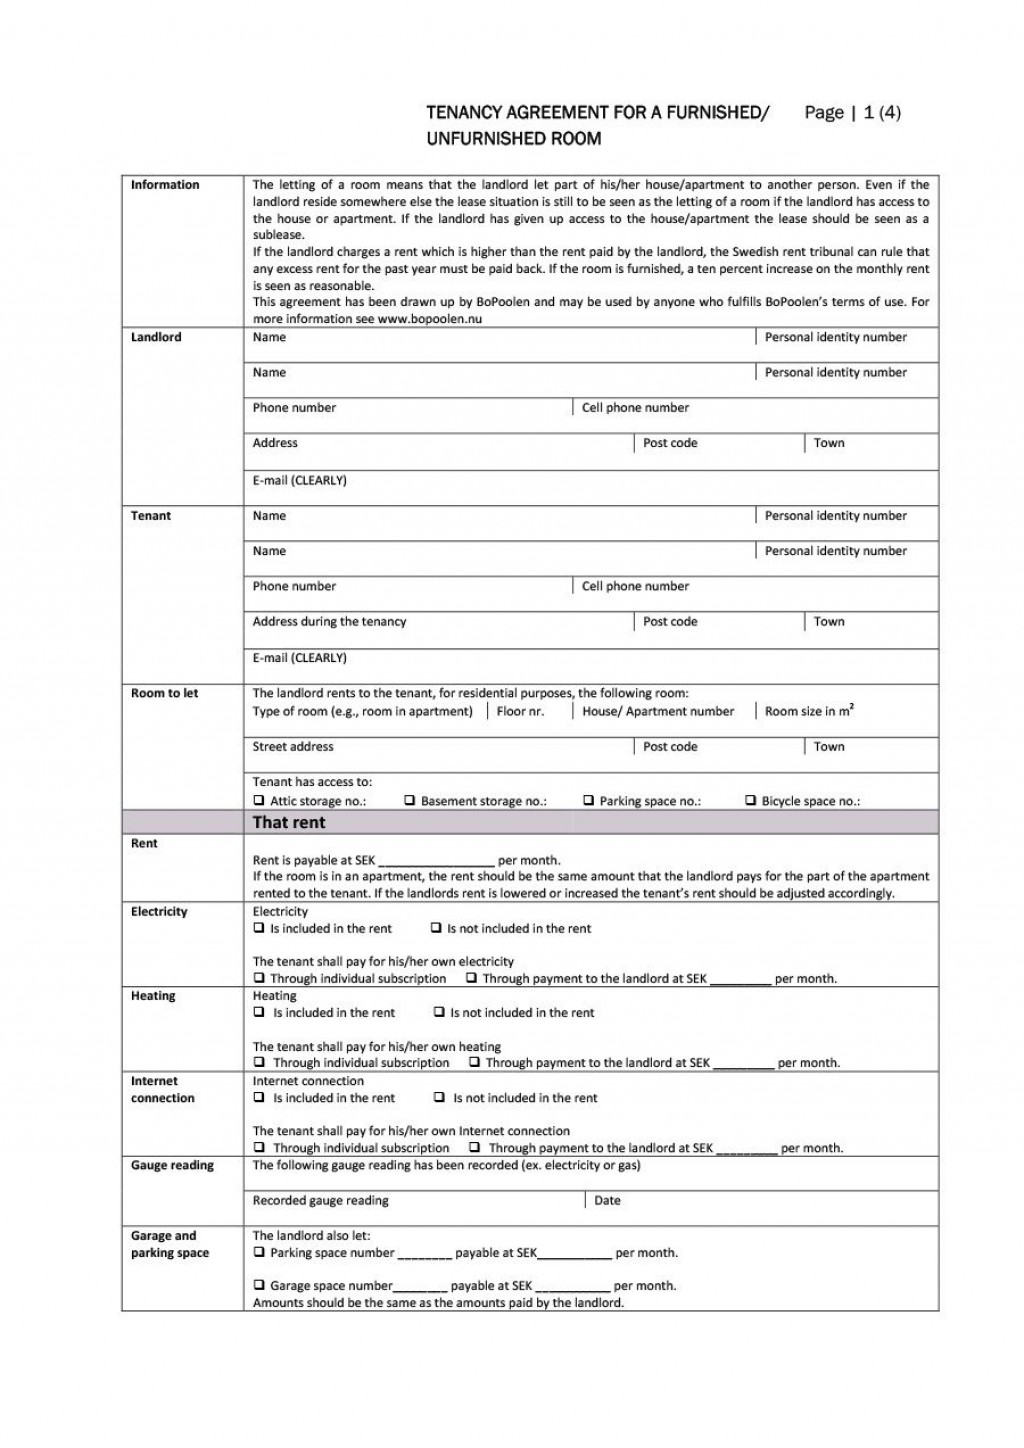 004 Sensational Room Rental Agreement Template Word Doc Malaysia Highest Quality Large